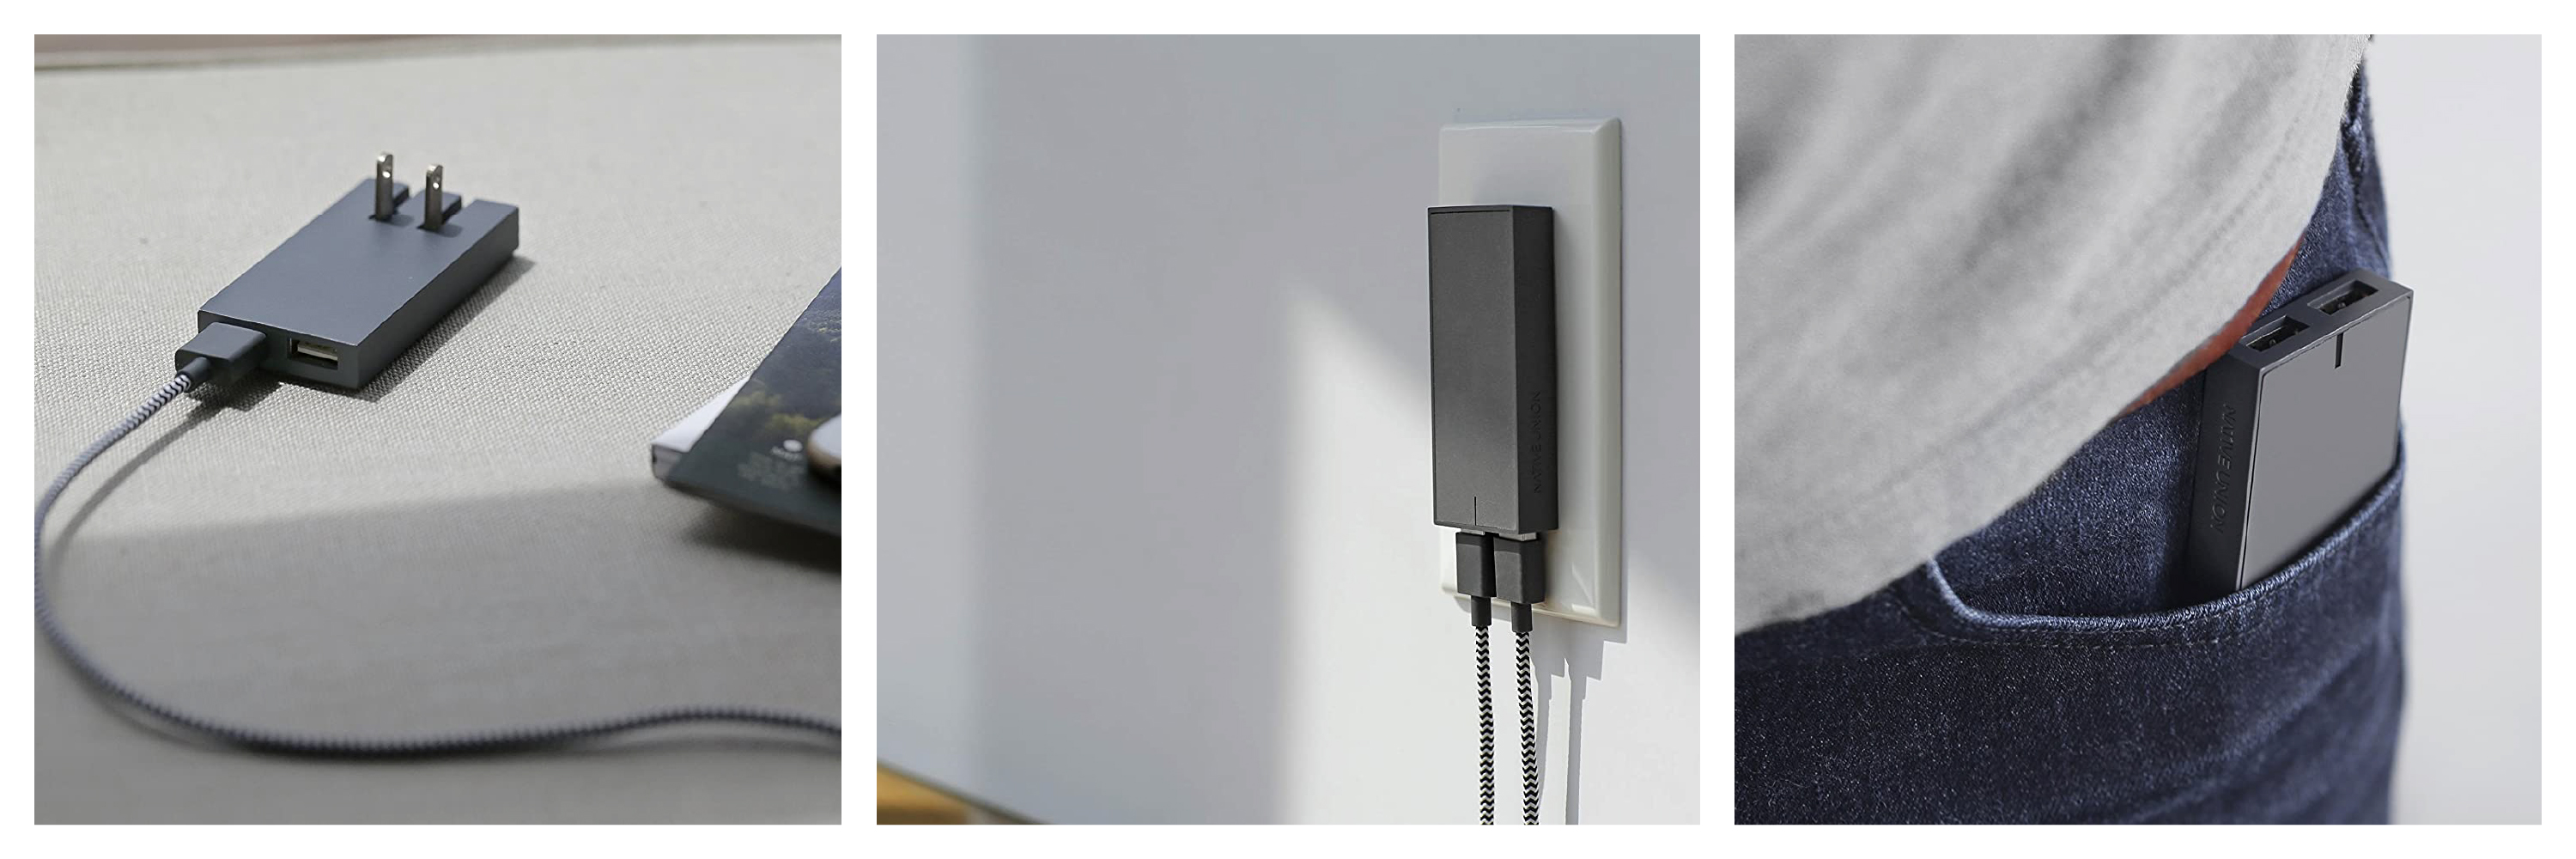 iCentre | NATIVE UNION SMART Charger - 4 portos töltőadapter